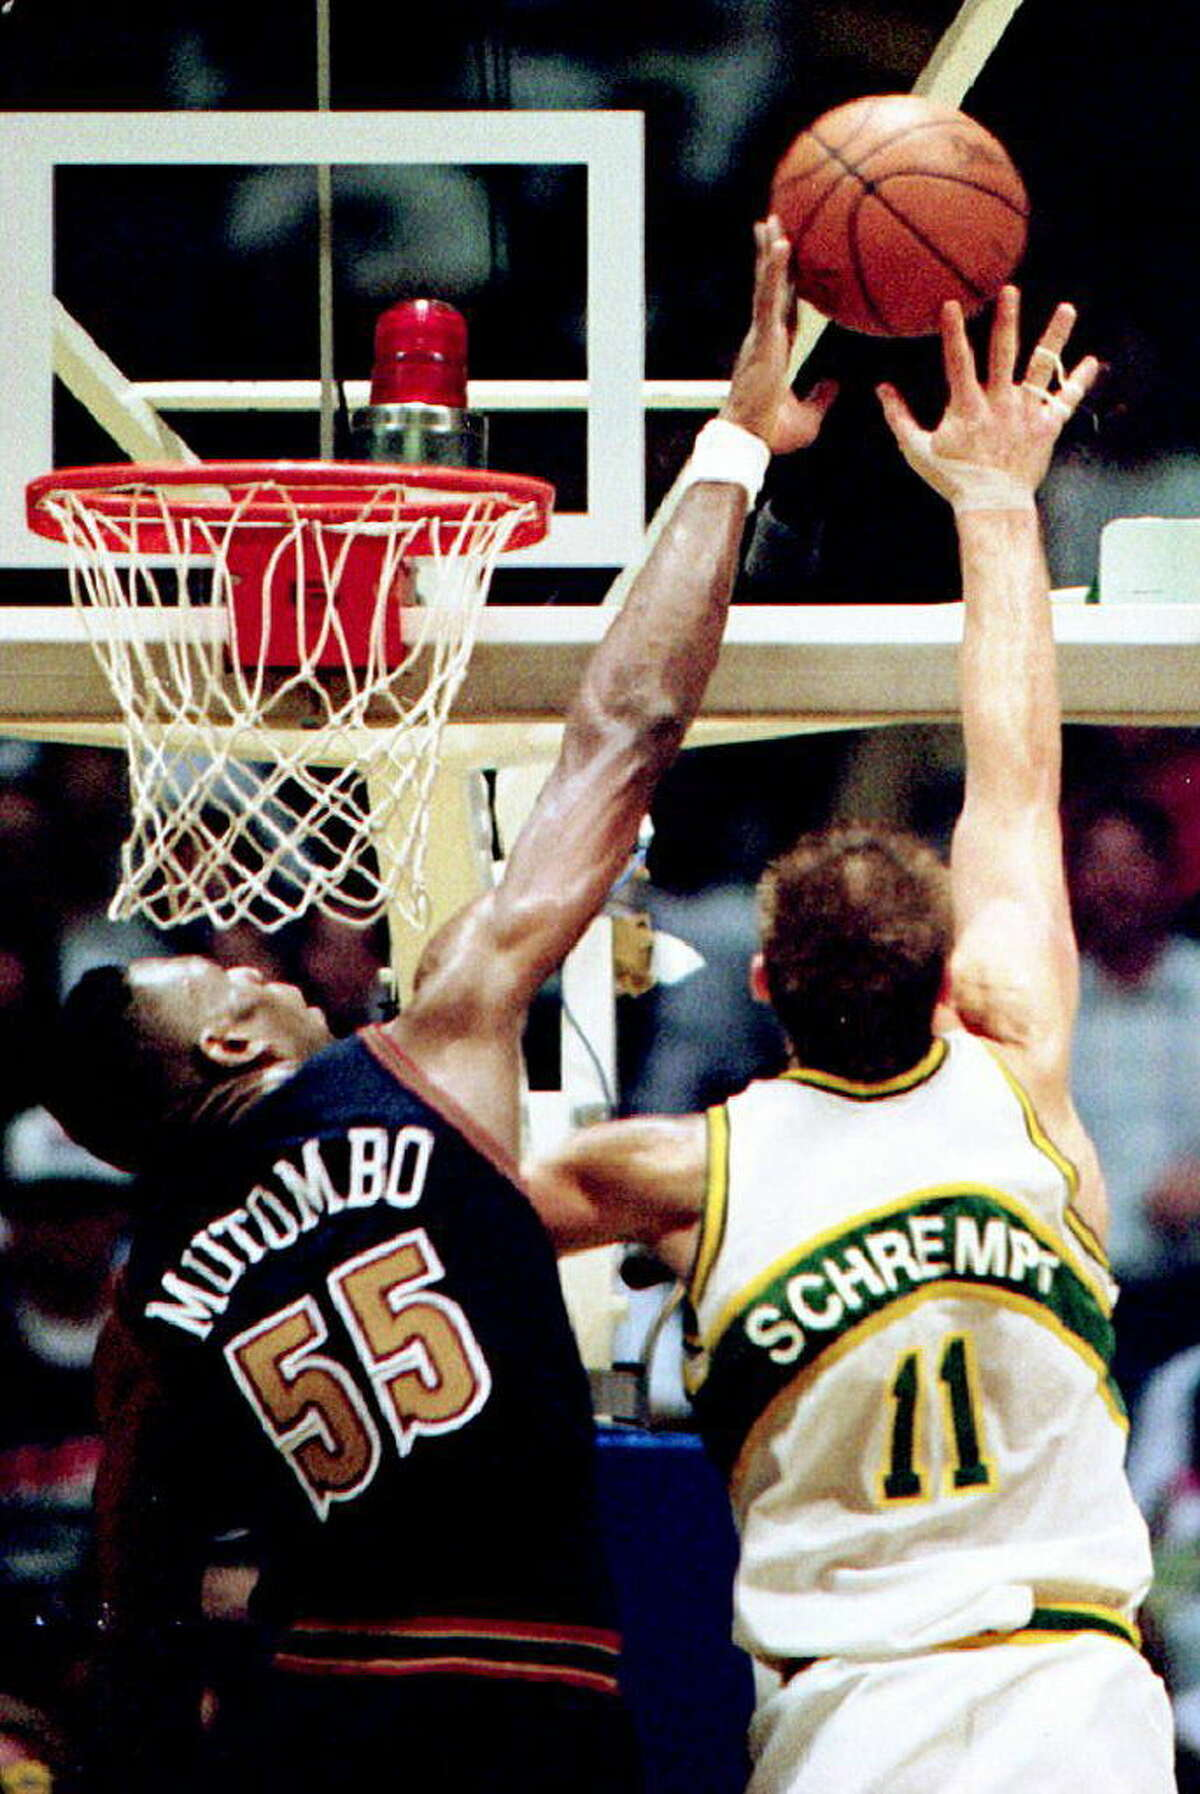 1994 No. 8 seed: Denver Nuggets No. 1 seed: Seattle Supersonics Series: 3-2* *Best-of-five